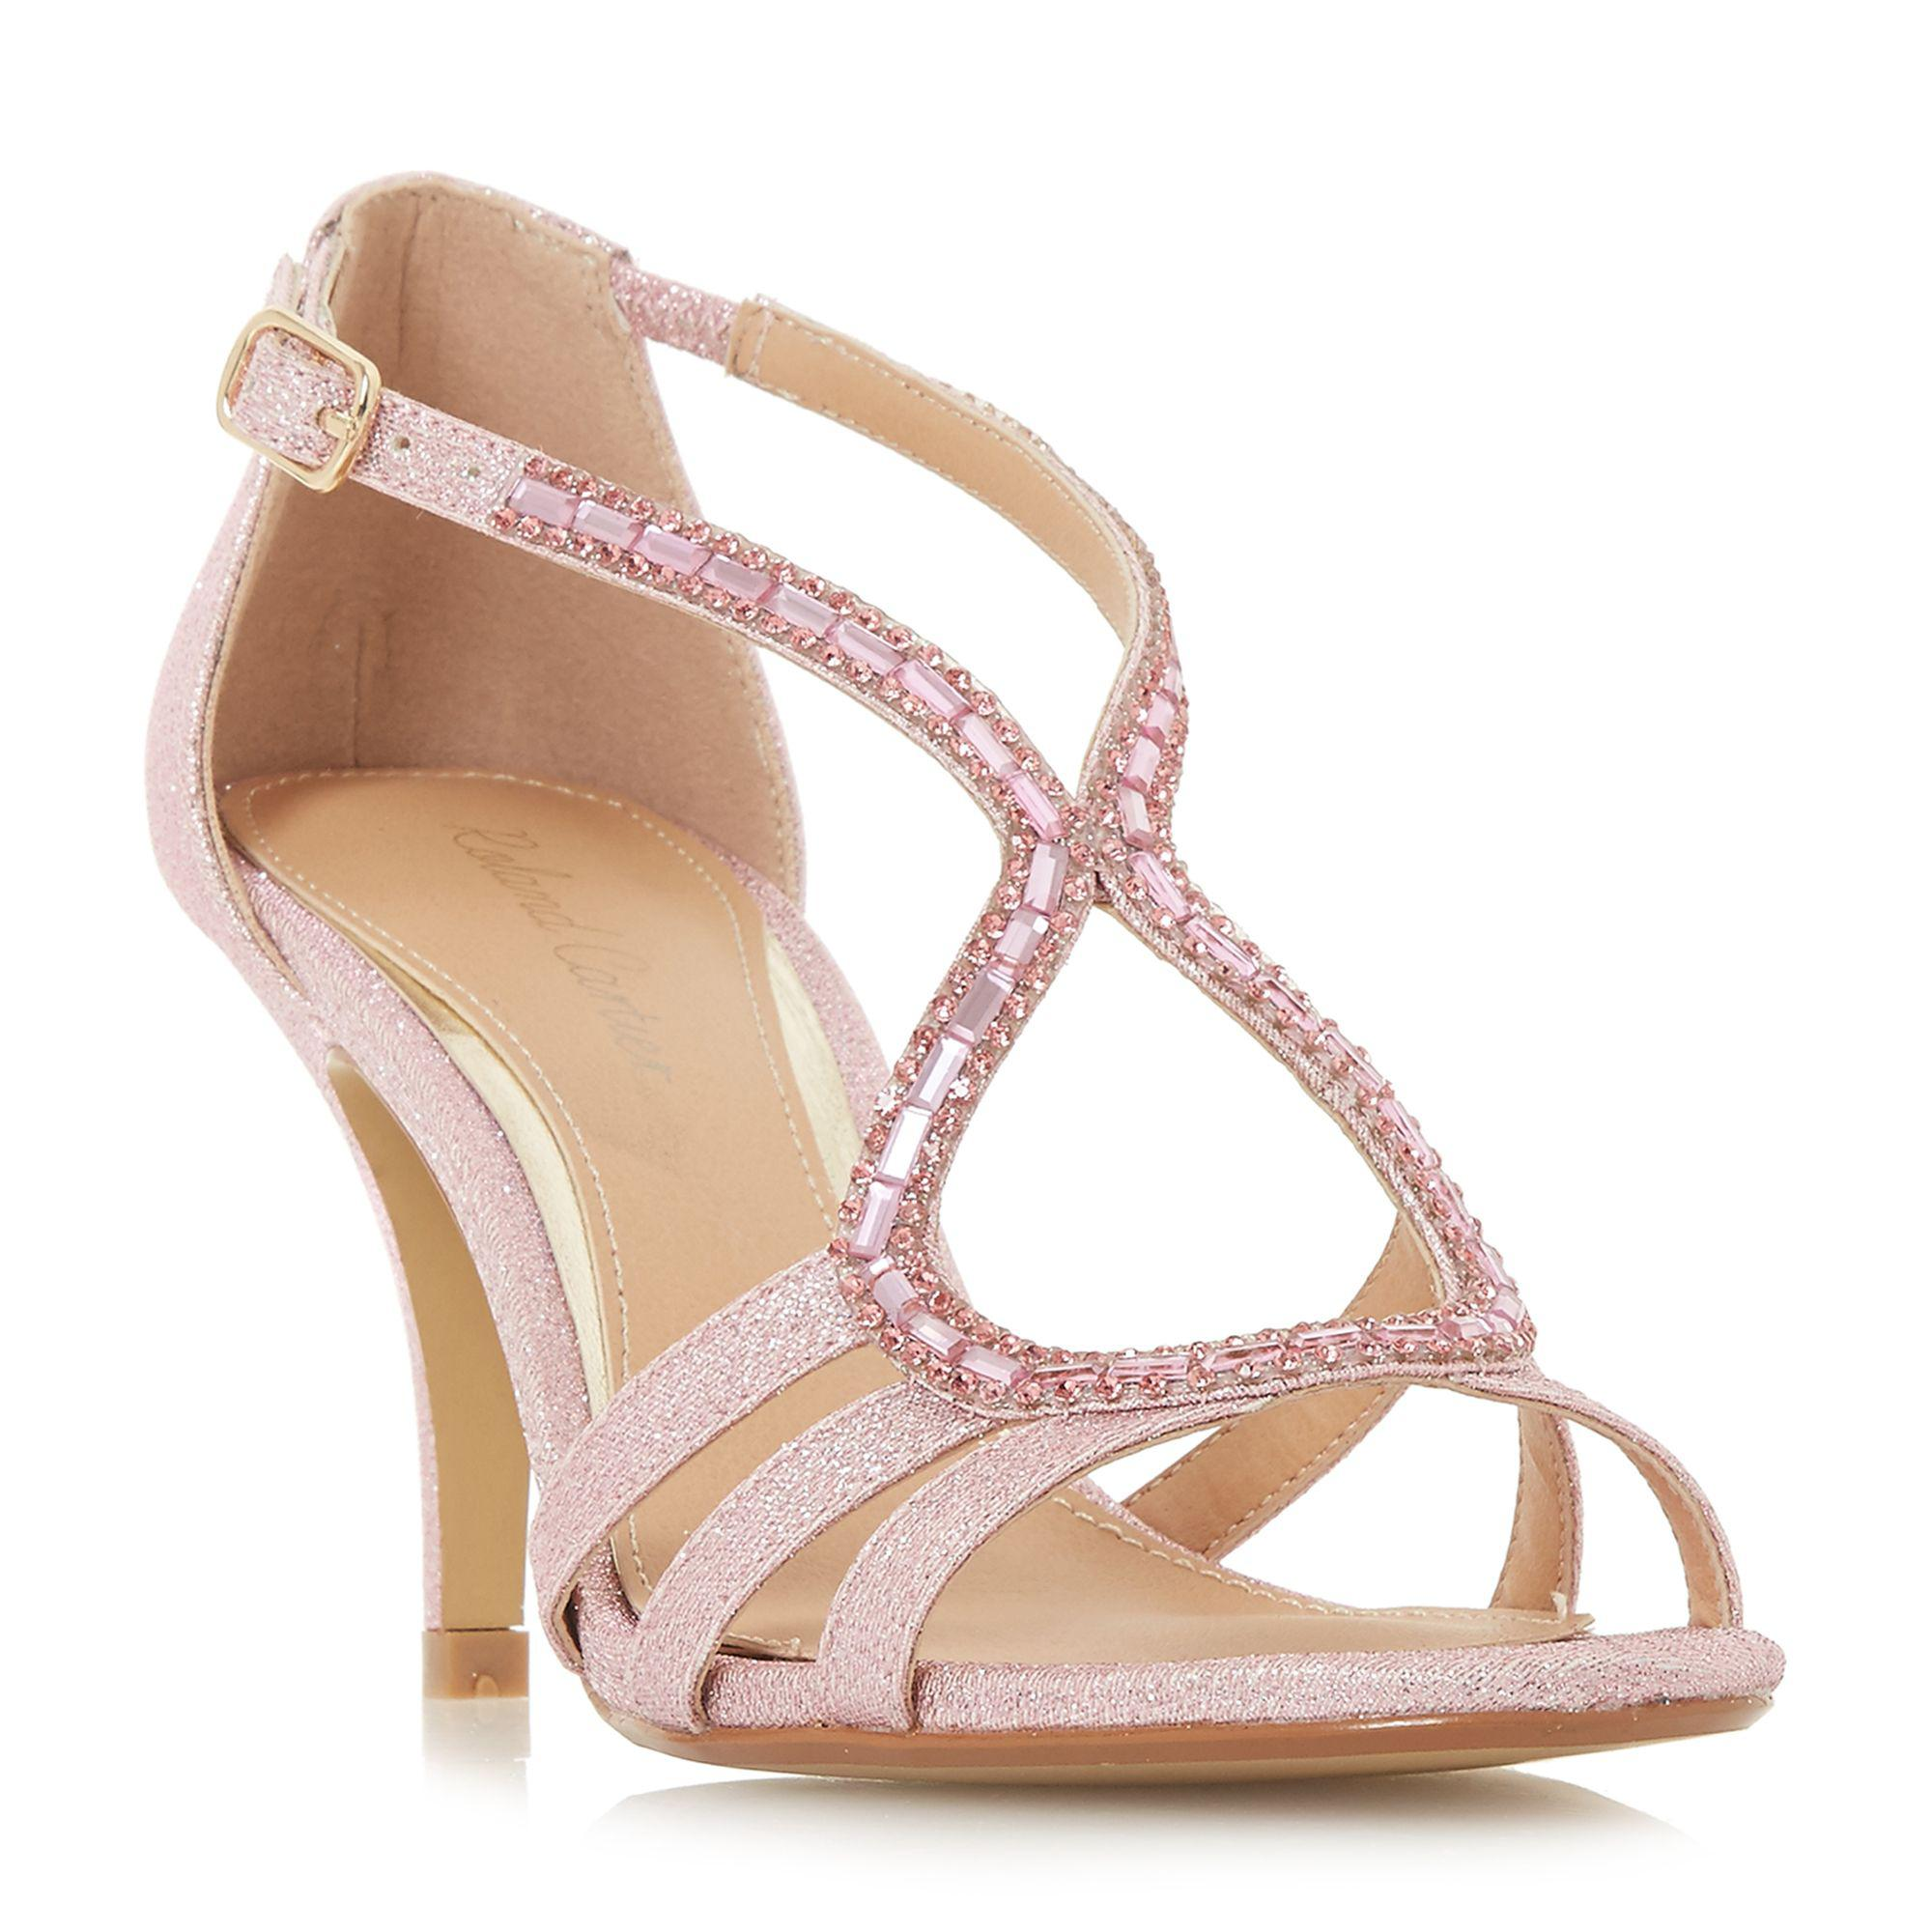 07666ad9b50 Roland Cartier Pink  mikayla  Ankle Strap Sandals in Pink - Lyst